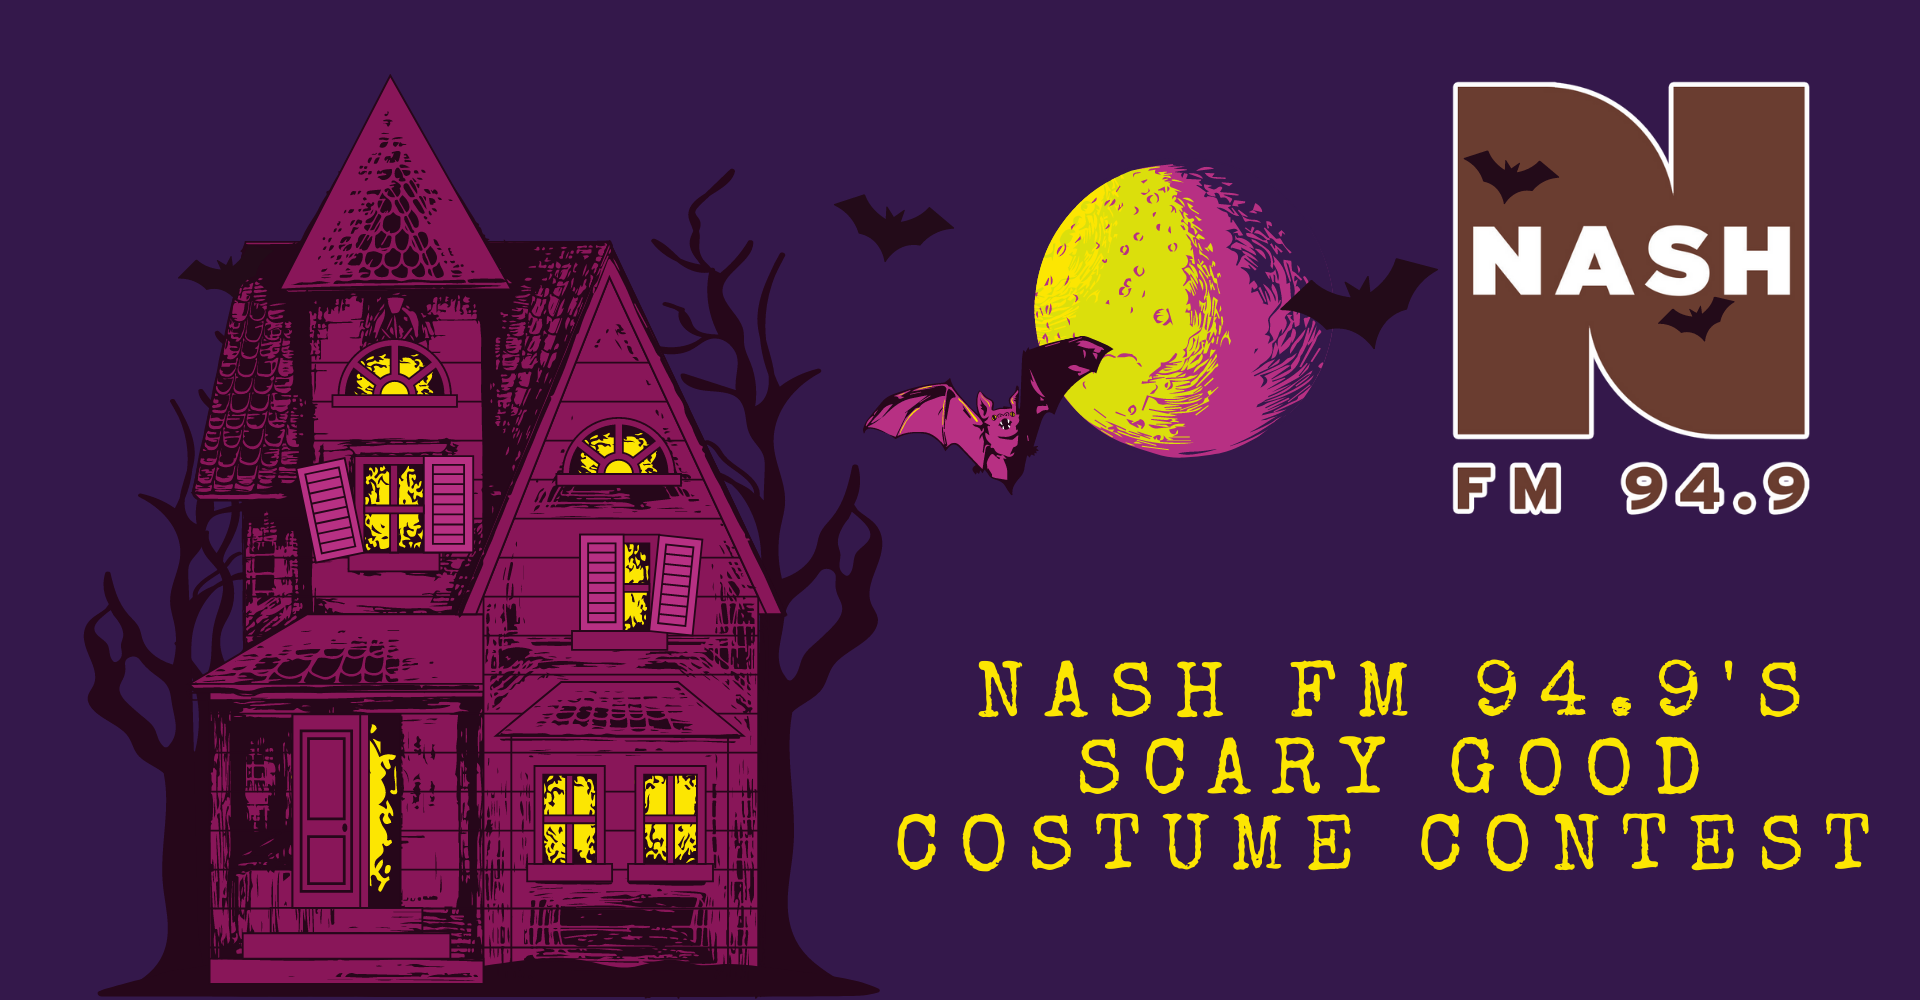 Nash 94.9 FM's Scary Good Costume Contest